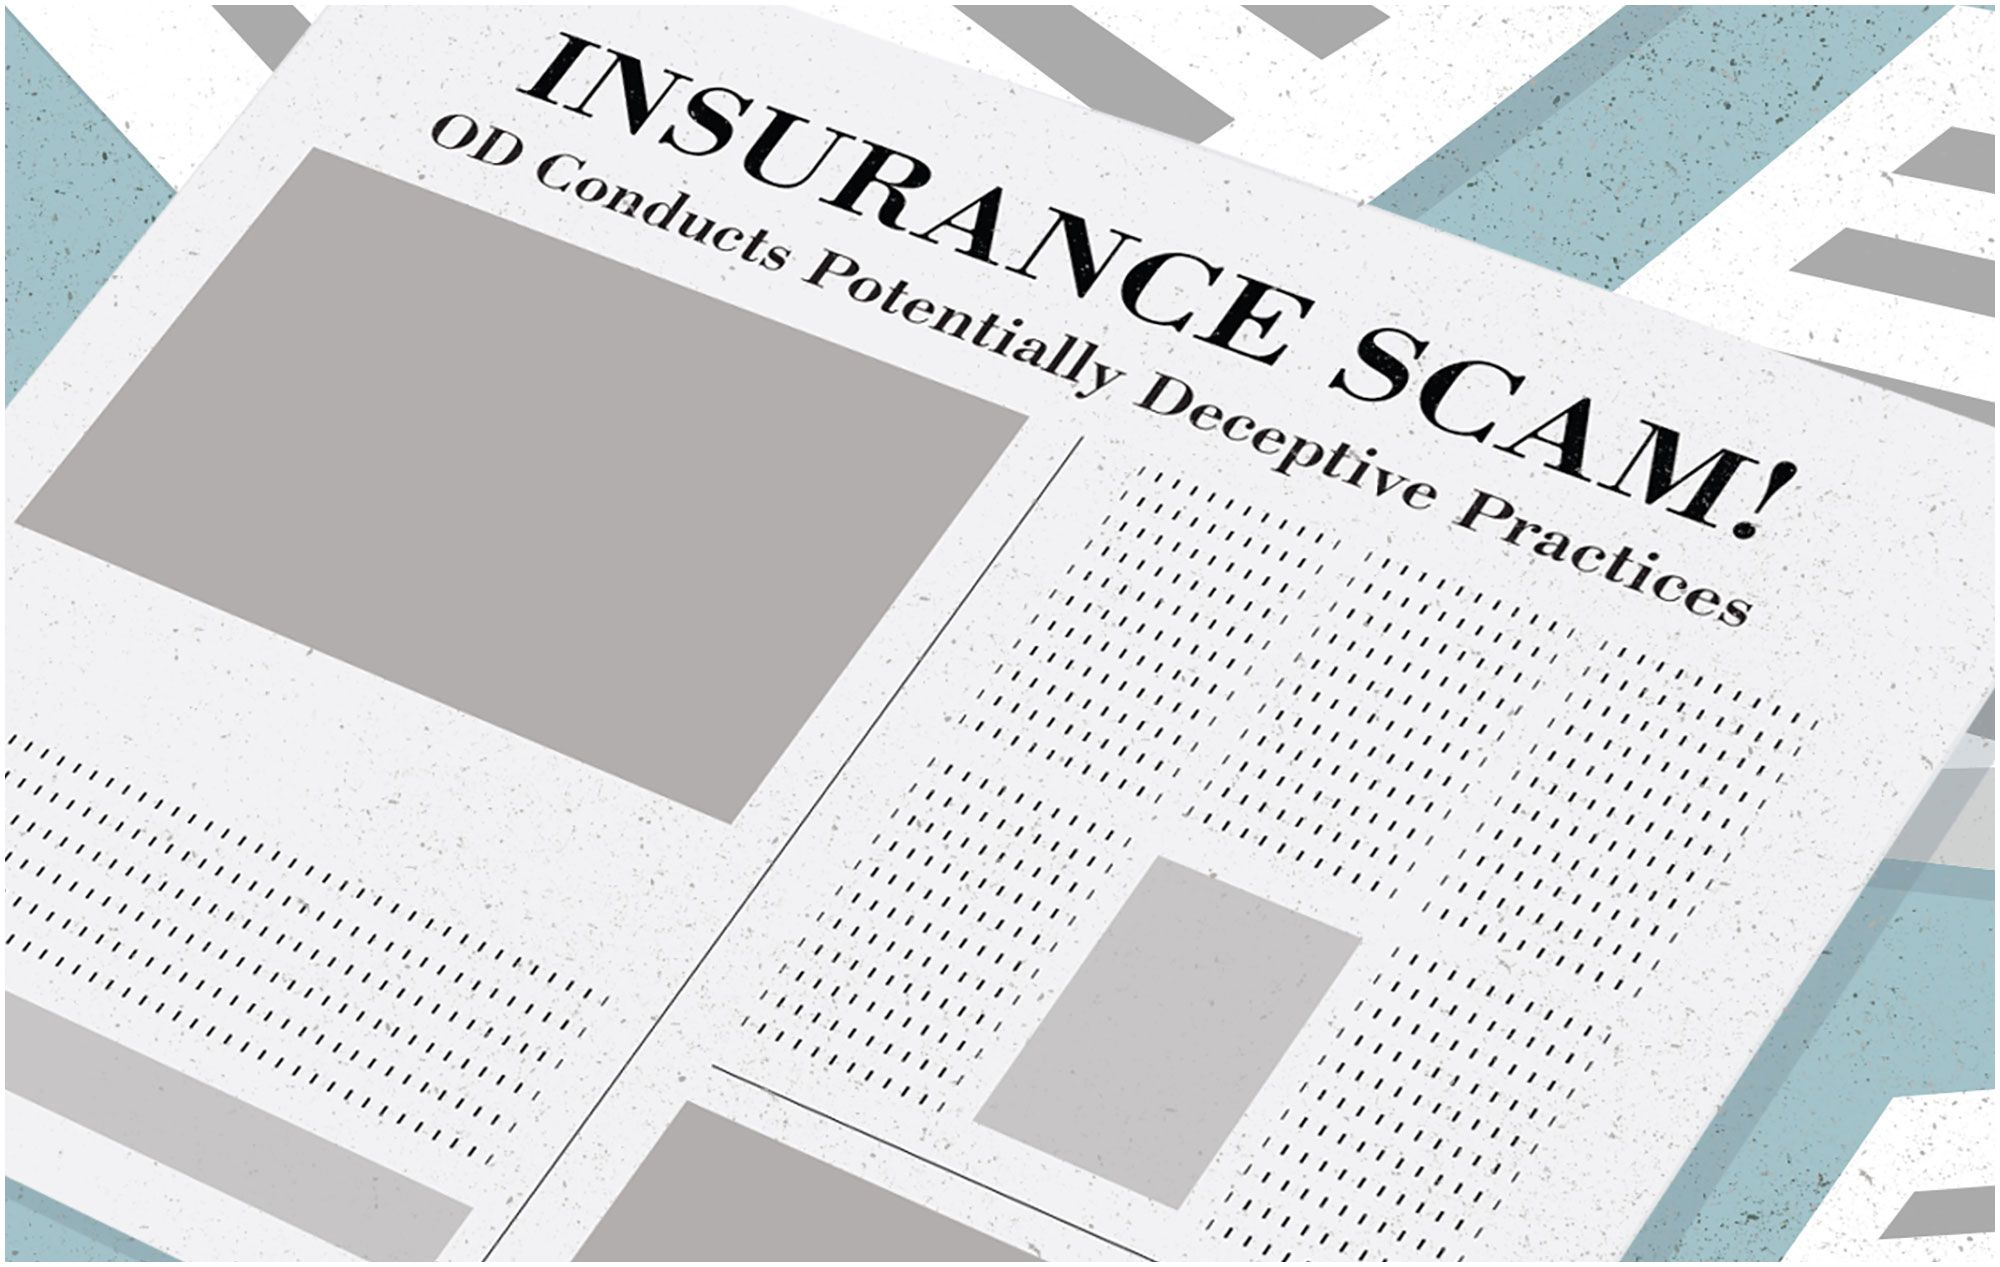 Partner Mags Scam Ever Feel Like Your Billing Policy is Backfiring